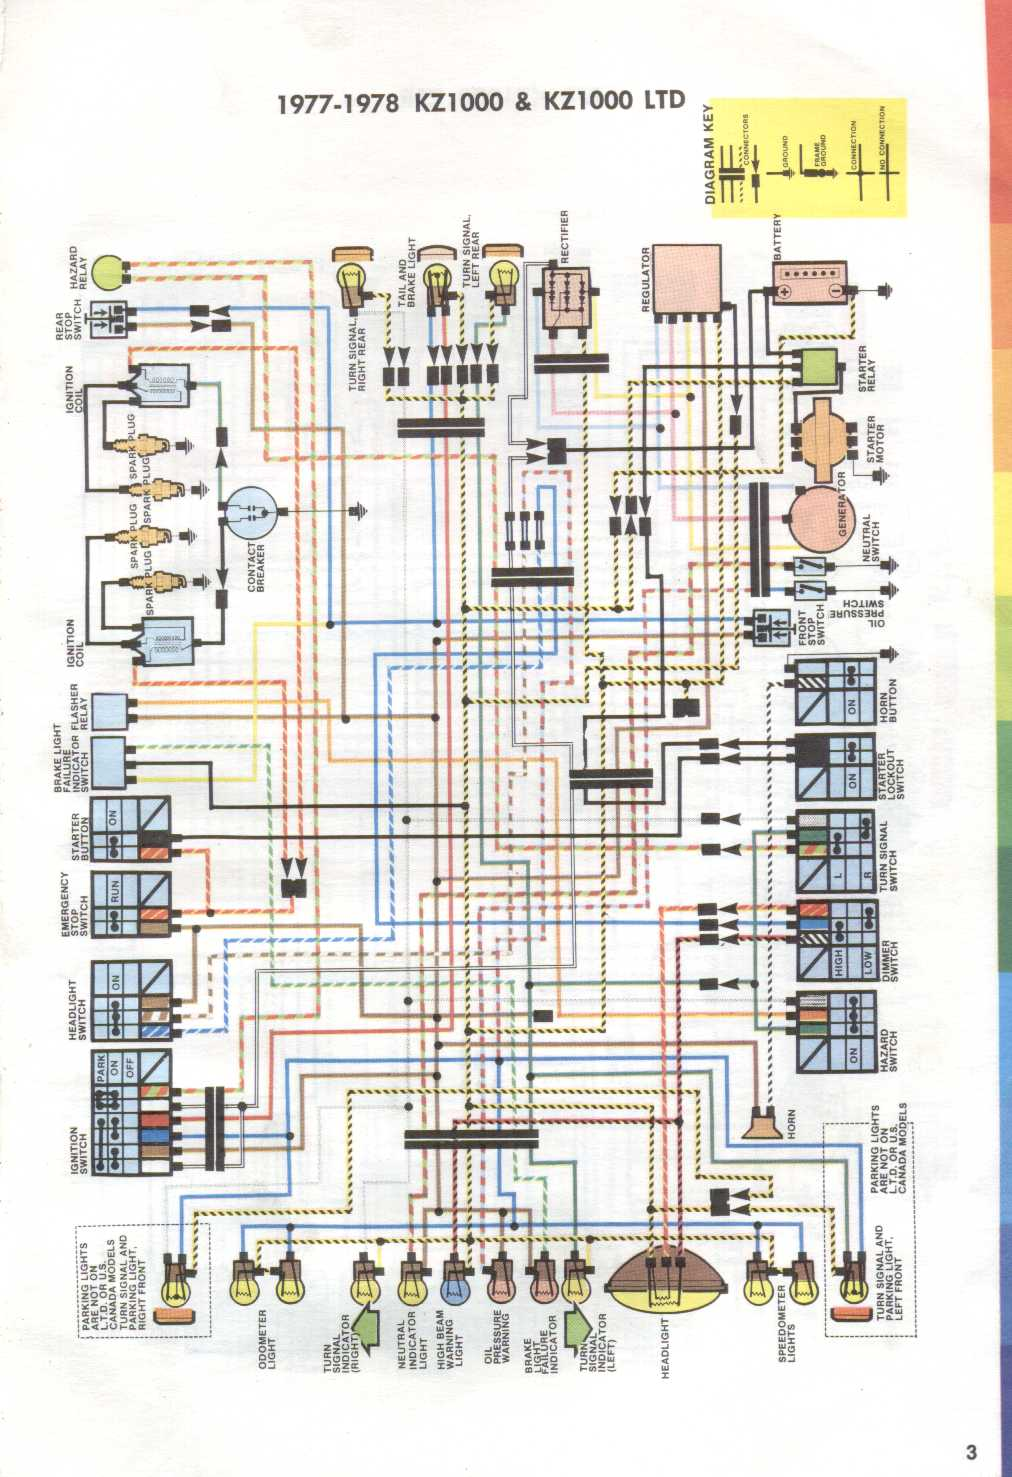 1982 Yamaha Qt50 Wiring Diagram Library Tt500 For 1977 1978 Kawasaki Kz1000 And Kz1000ltd Evan Xs750 Cafe Racer 79